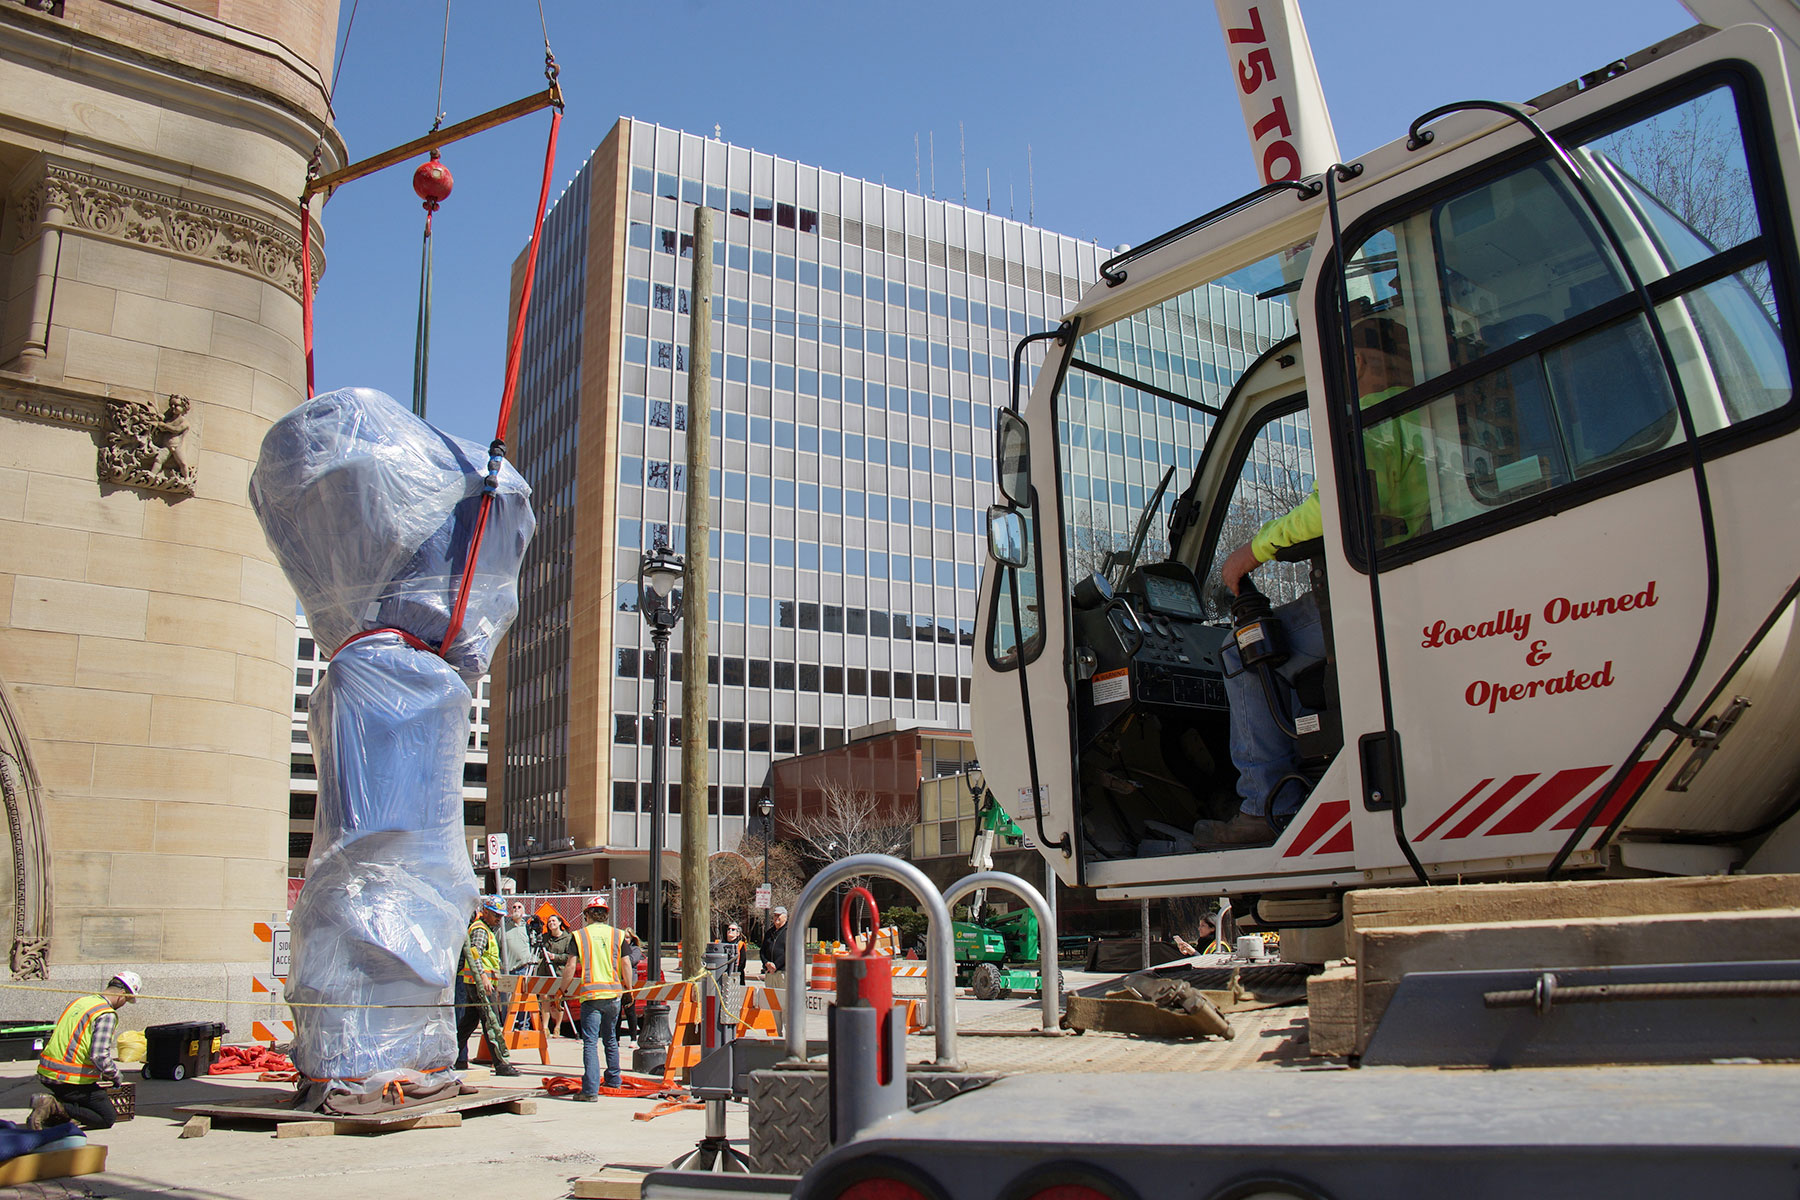 Abstract Sculpture On Milwaukee >> City Hall gets permanent public art display with installation of iconic bronze sculpture | The ...